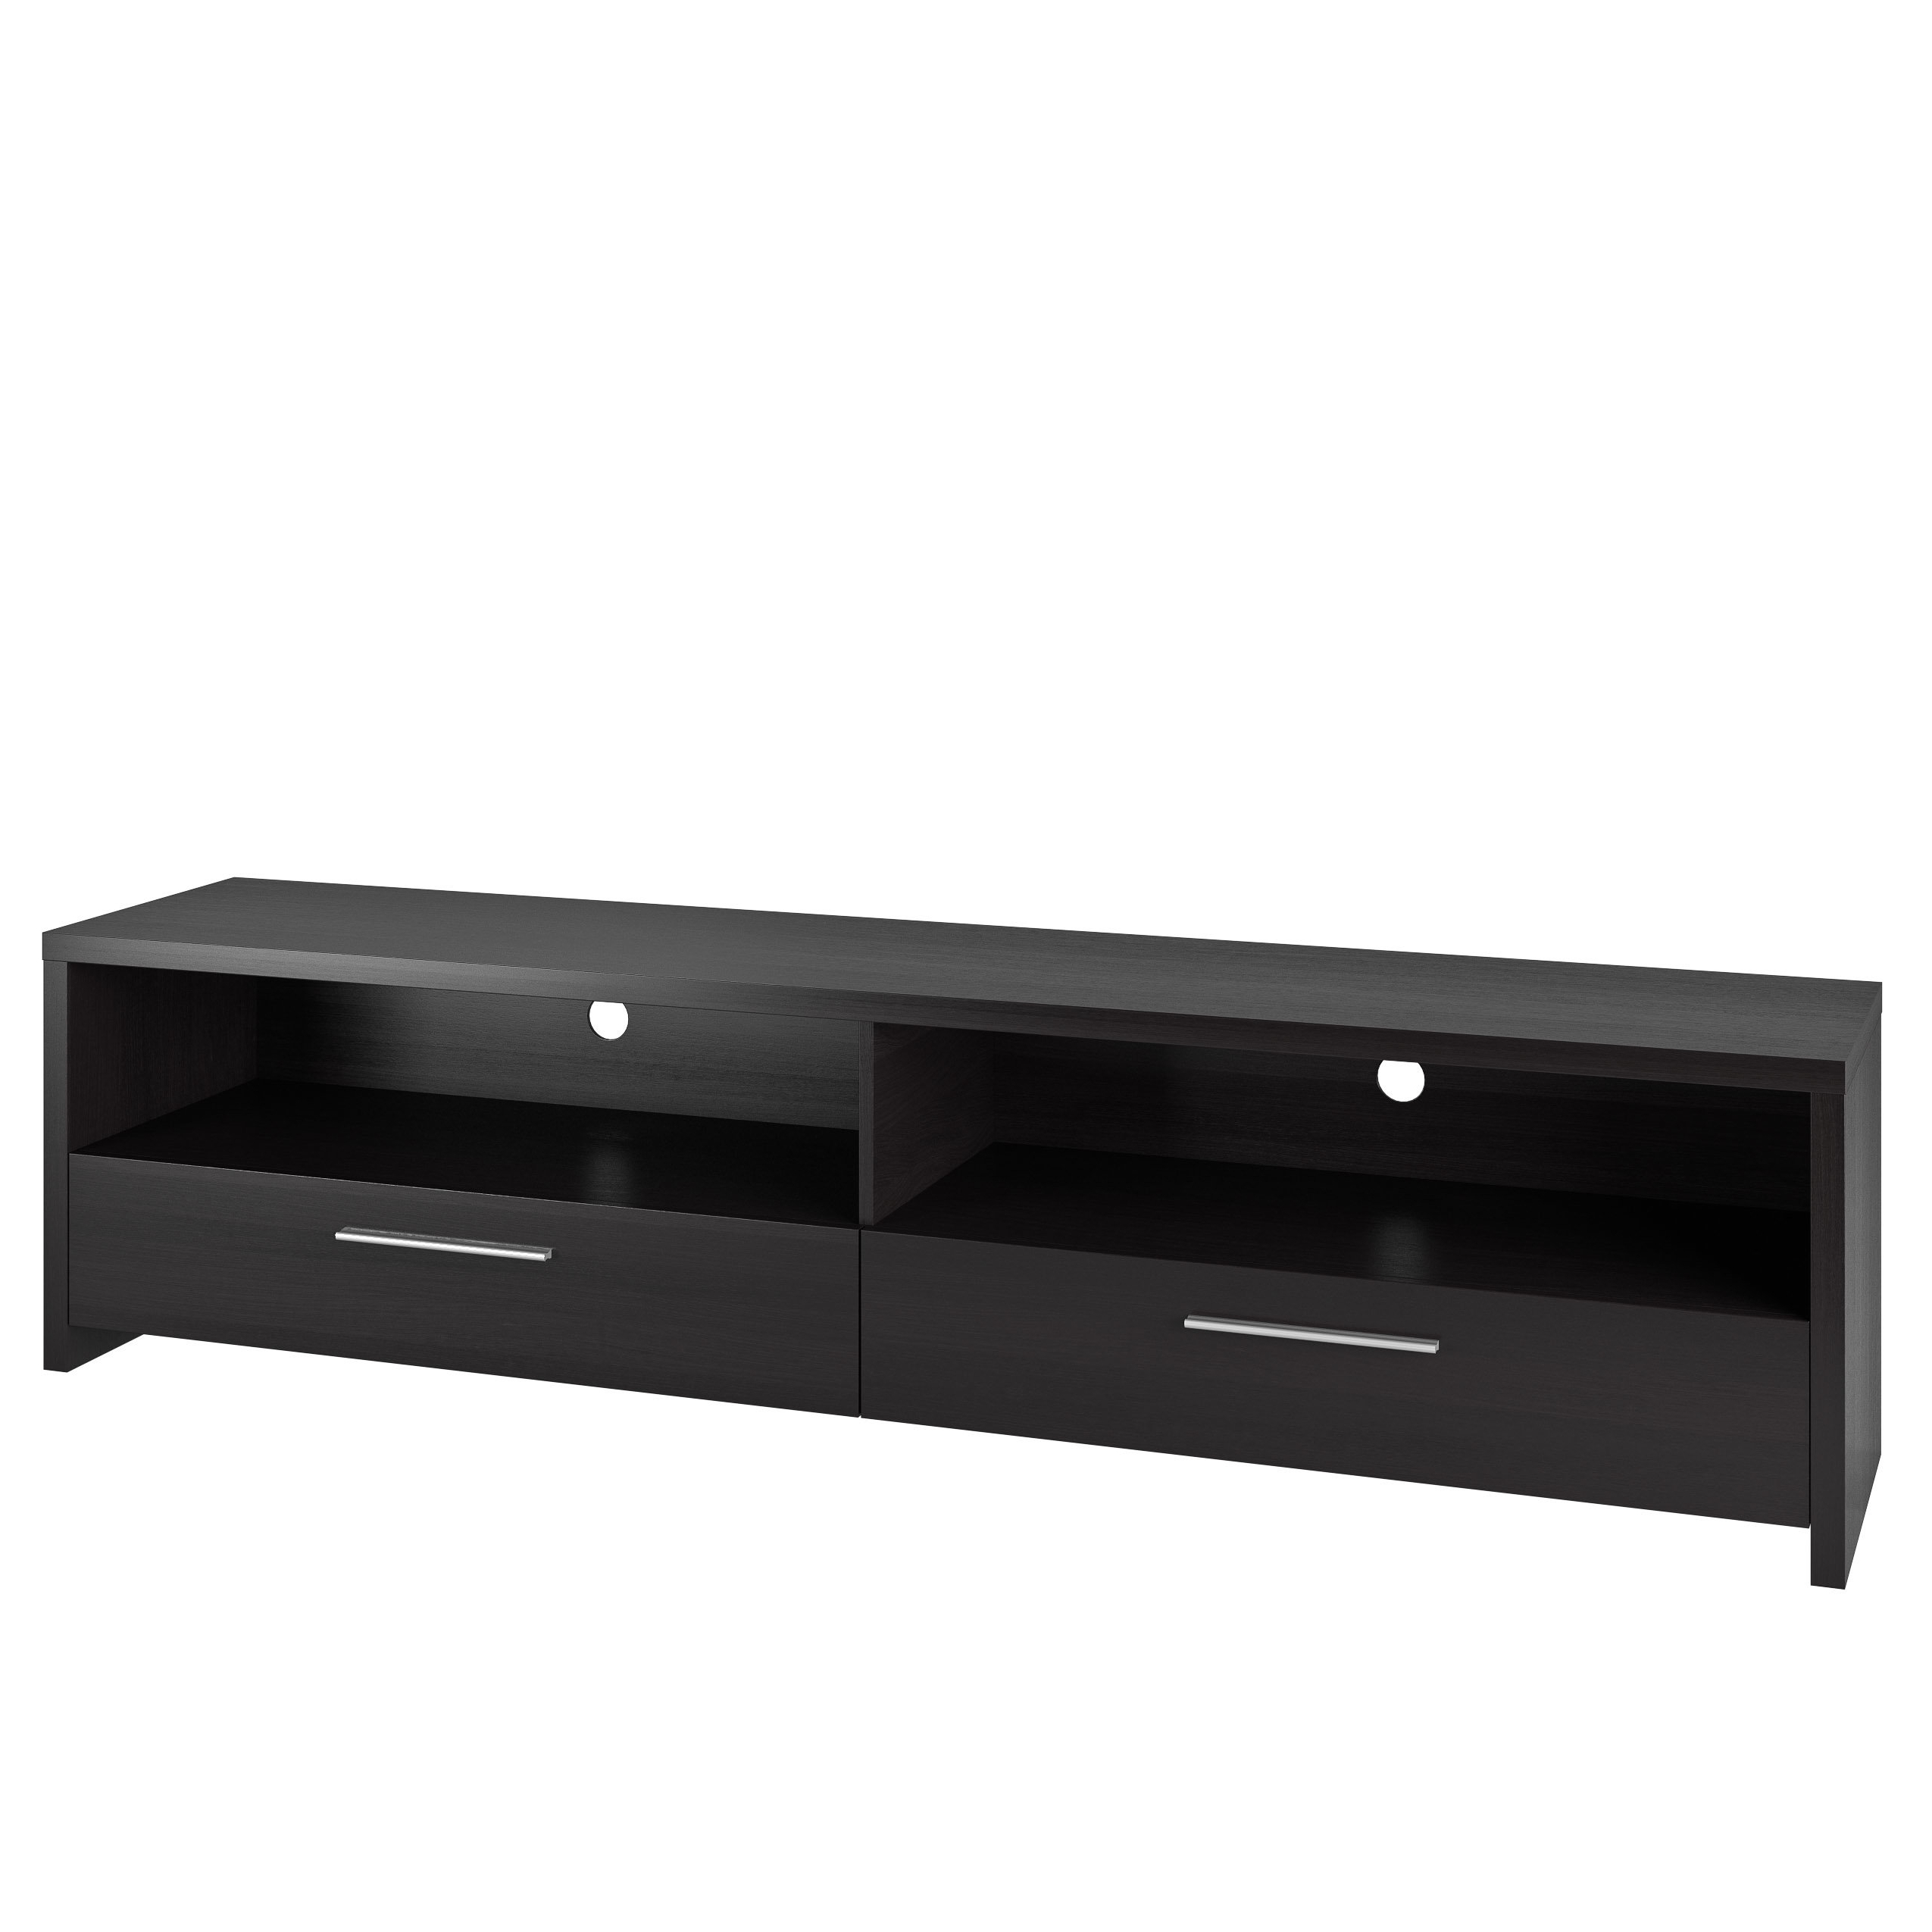 Allmodern Pertaining To Well Liked Modern Low Profile Tv Stands (View 2 of 20)